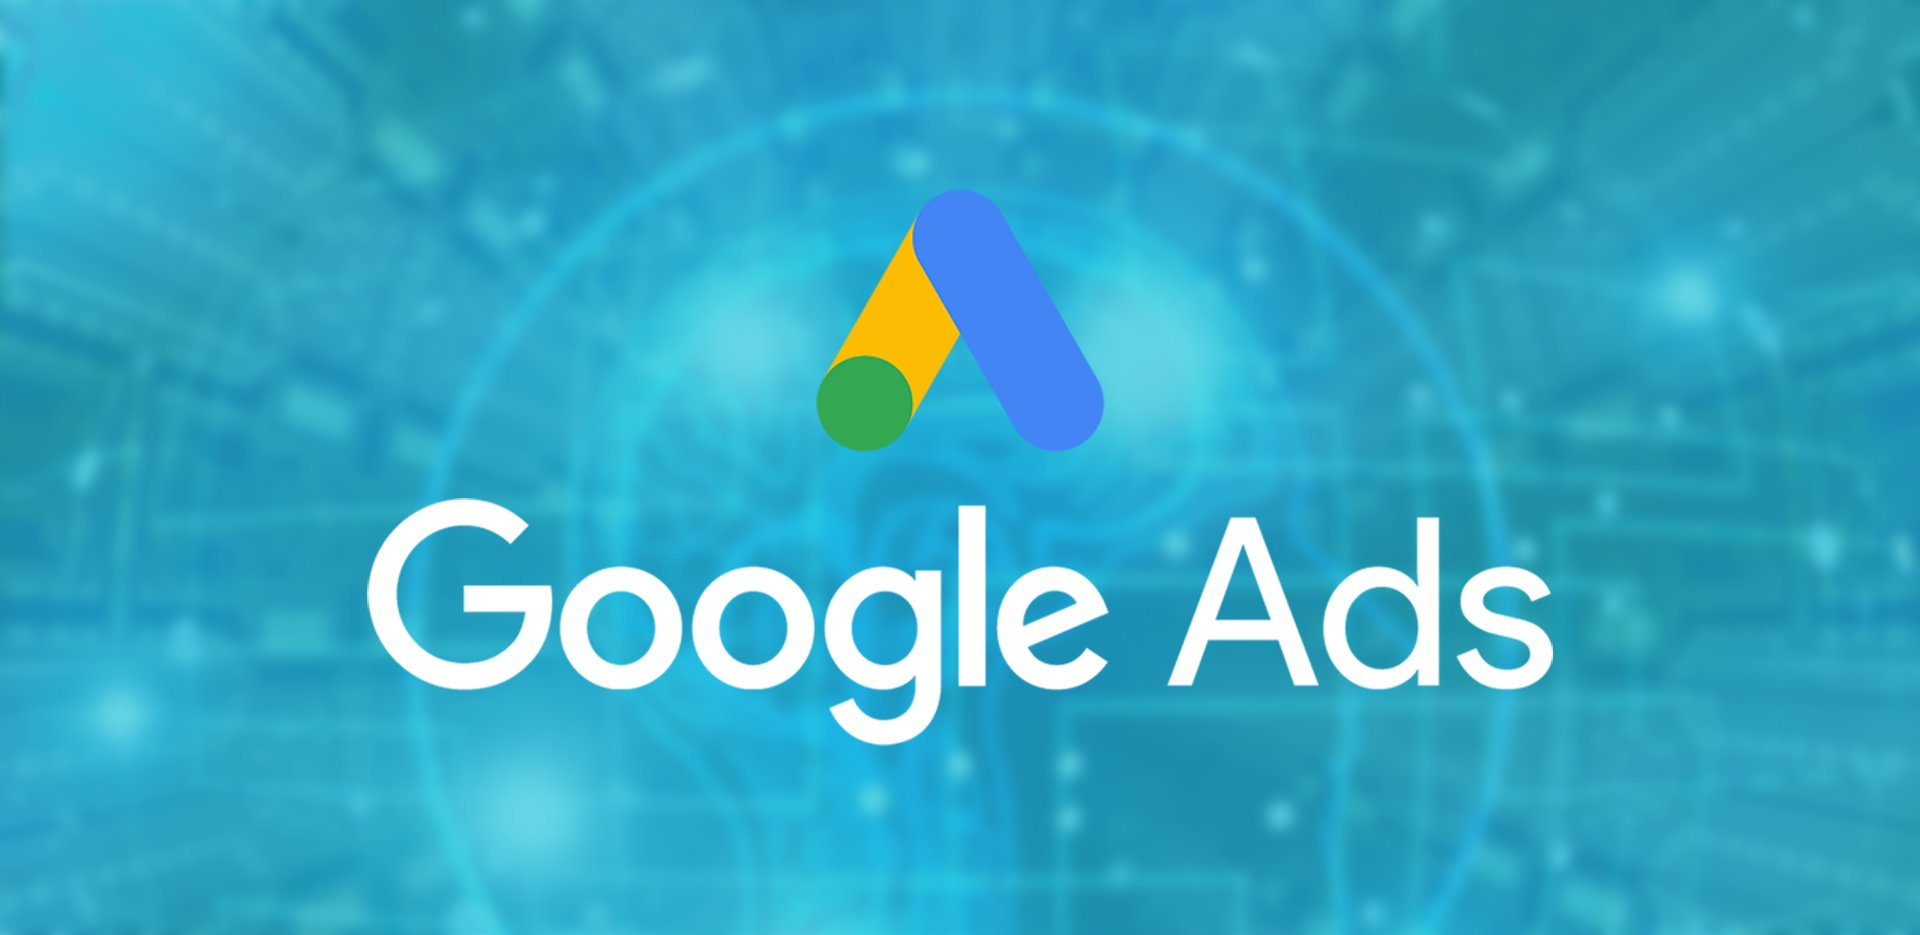 google ads is nieuwe adwords - hulp met marketing